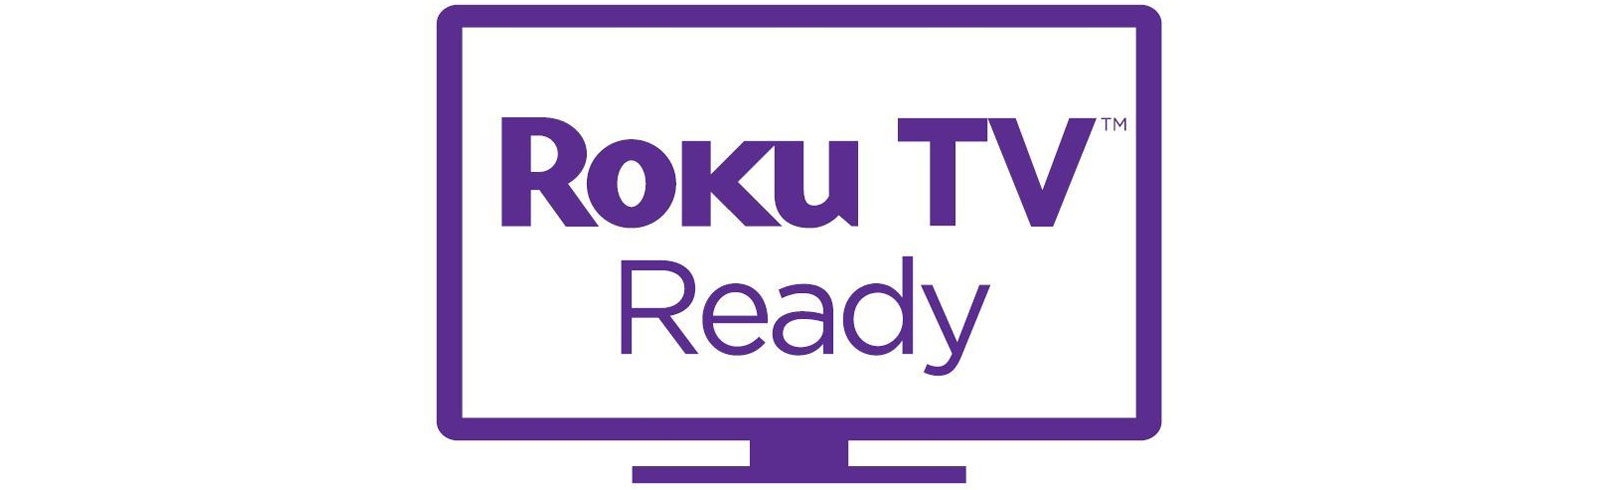 Roku TV Ready certification is launched, TCL North America is one of the first onboard